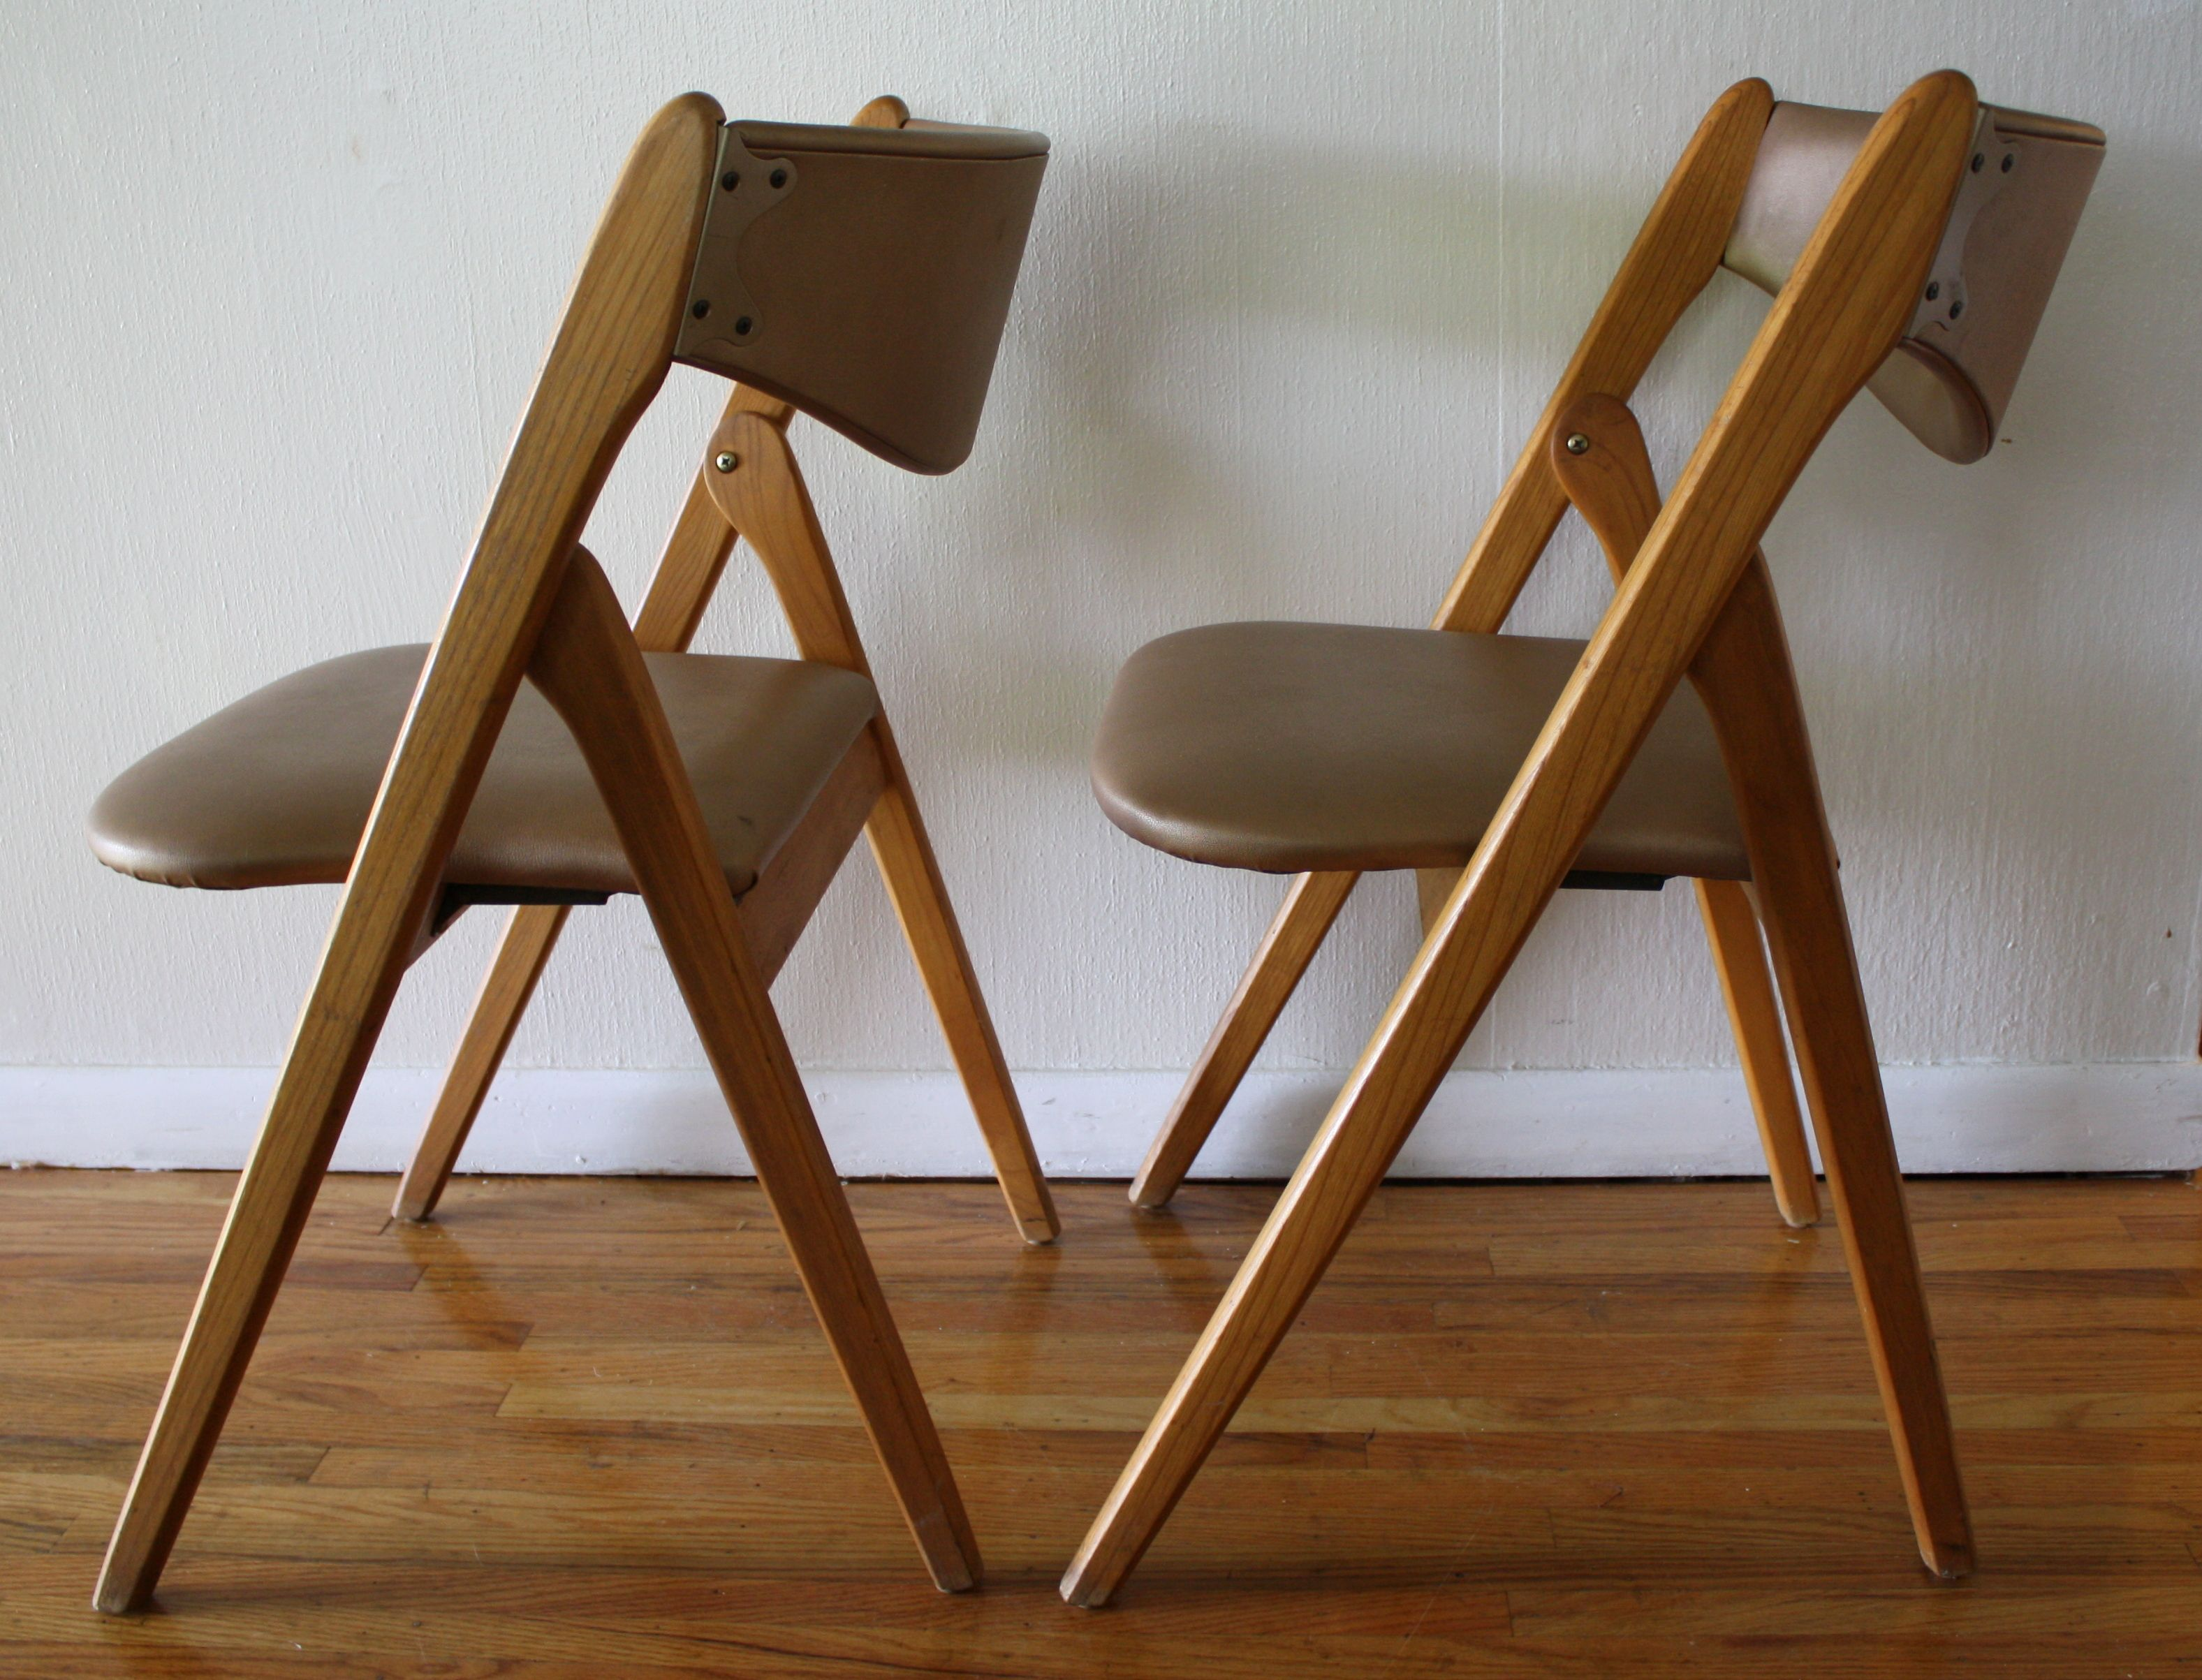 Mid Century Modern Coronet Folding Chairs This is a pair of mid